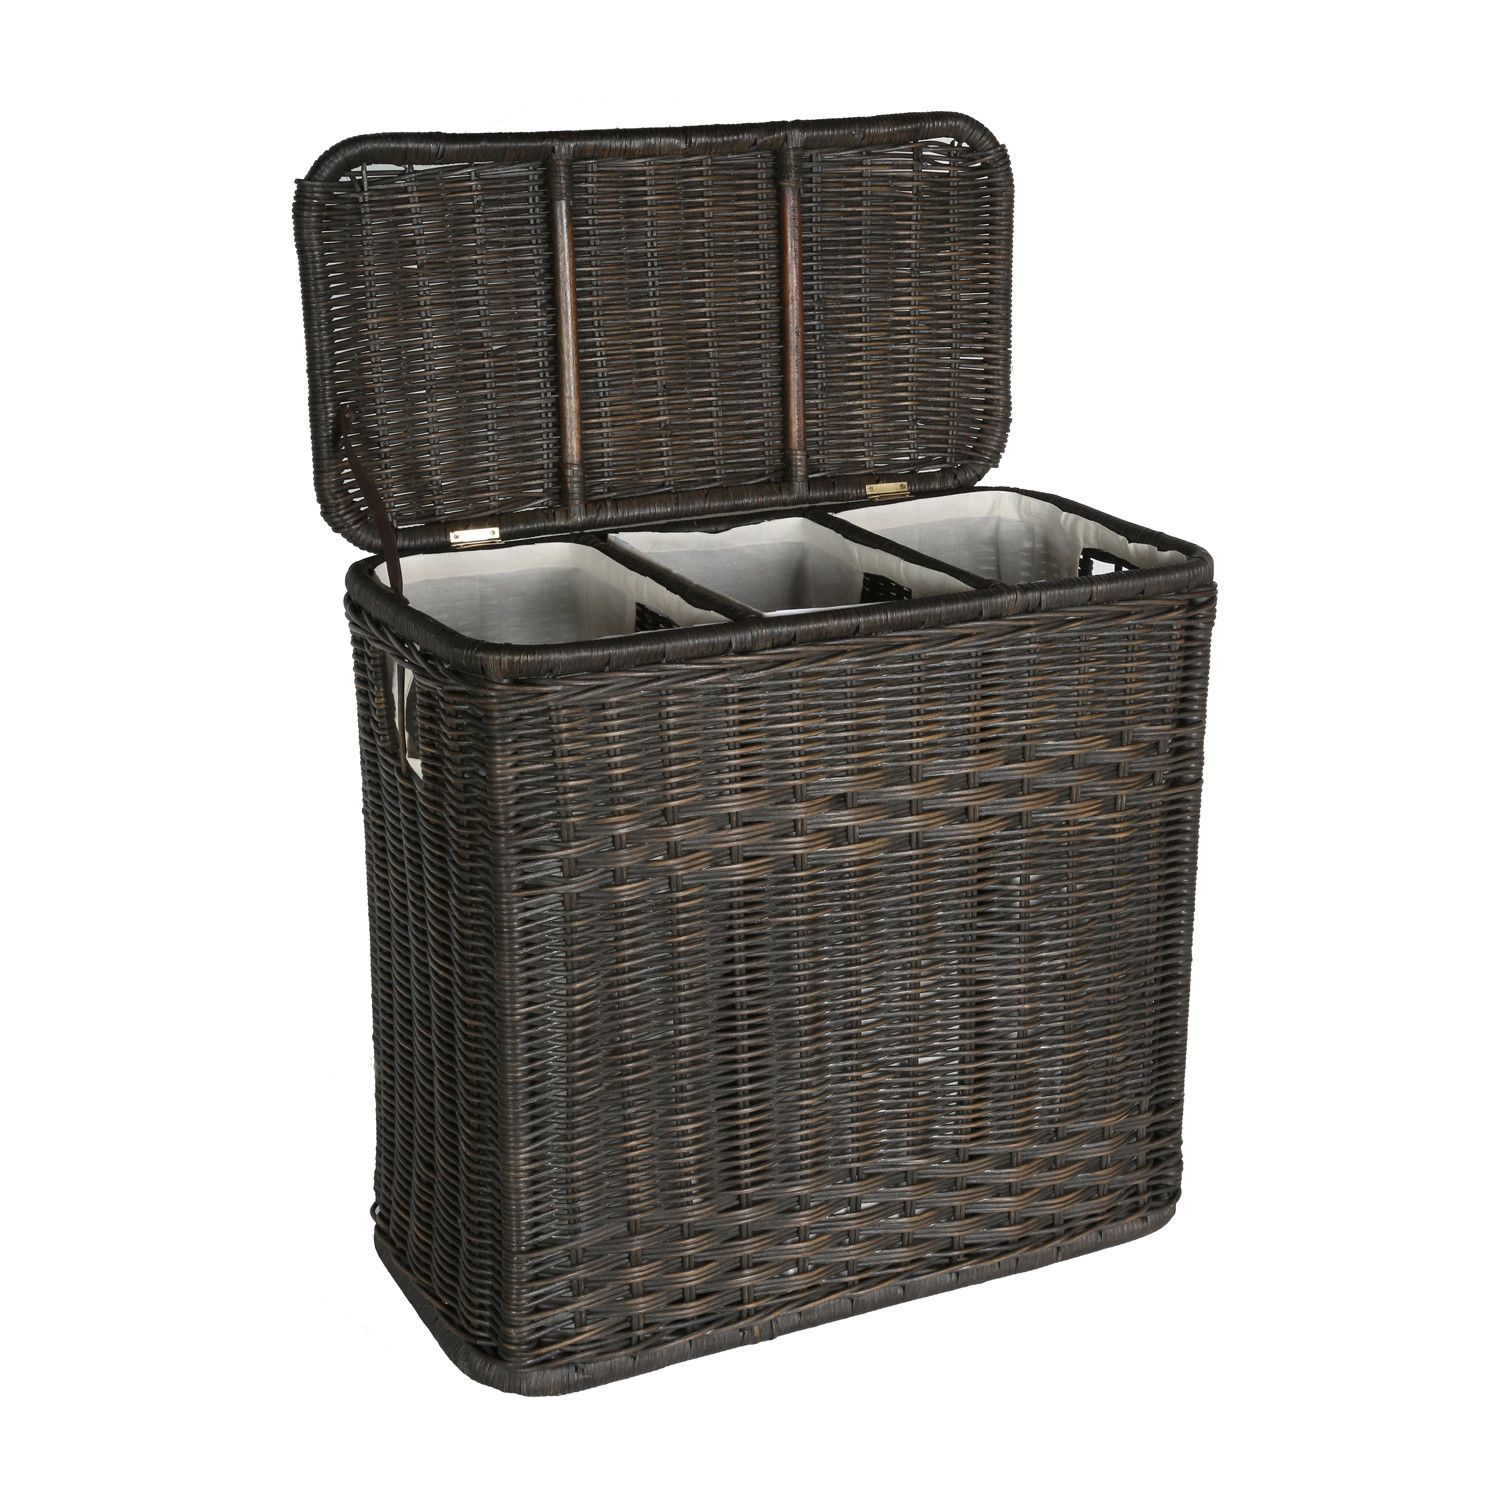 Laundry Basket Three Compartments The Basket Lady 3 Compartment Wicker Laundry Hamper In